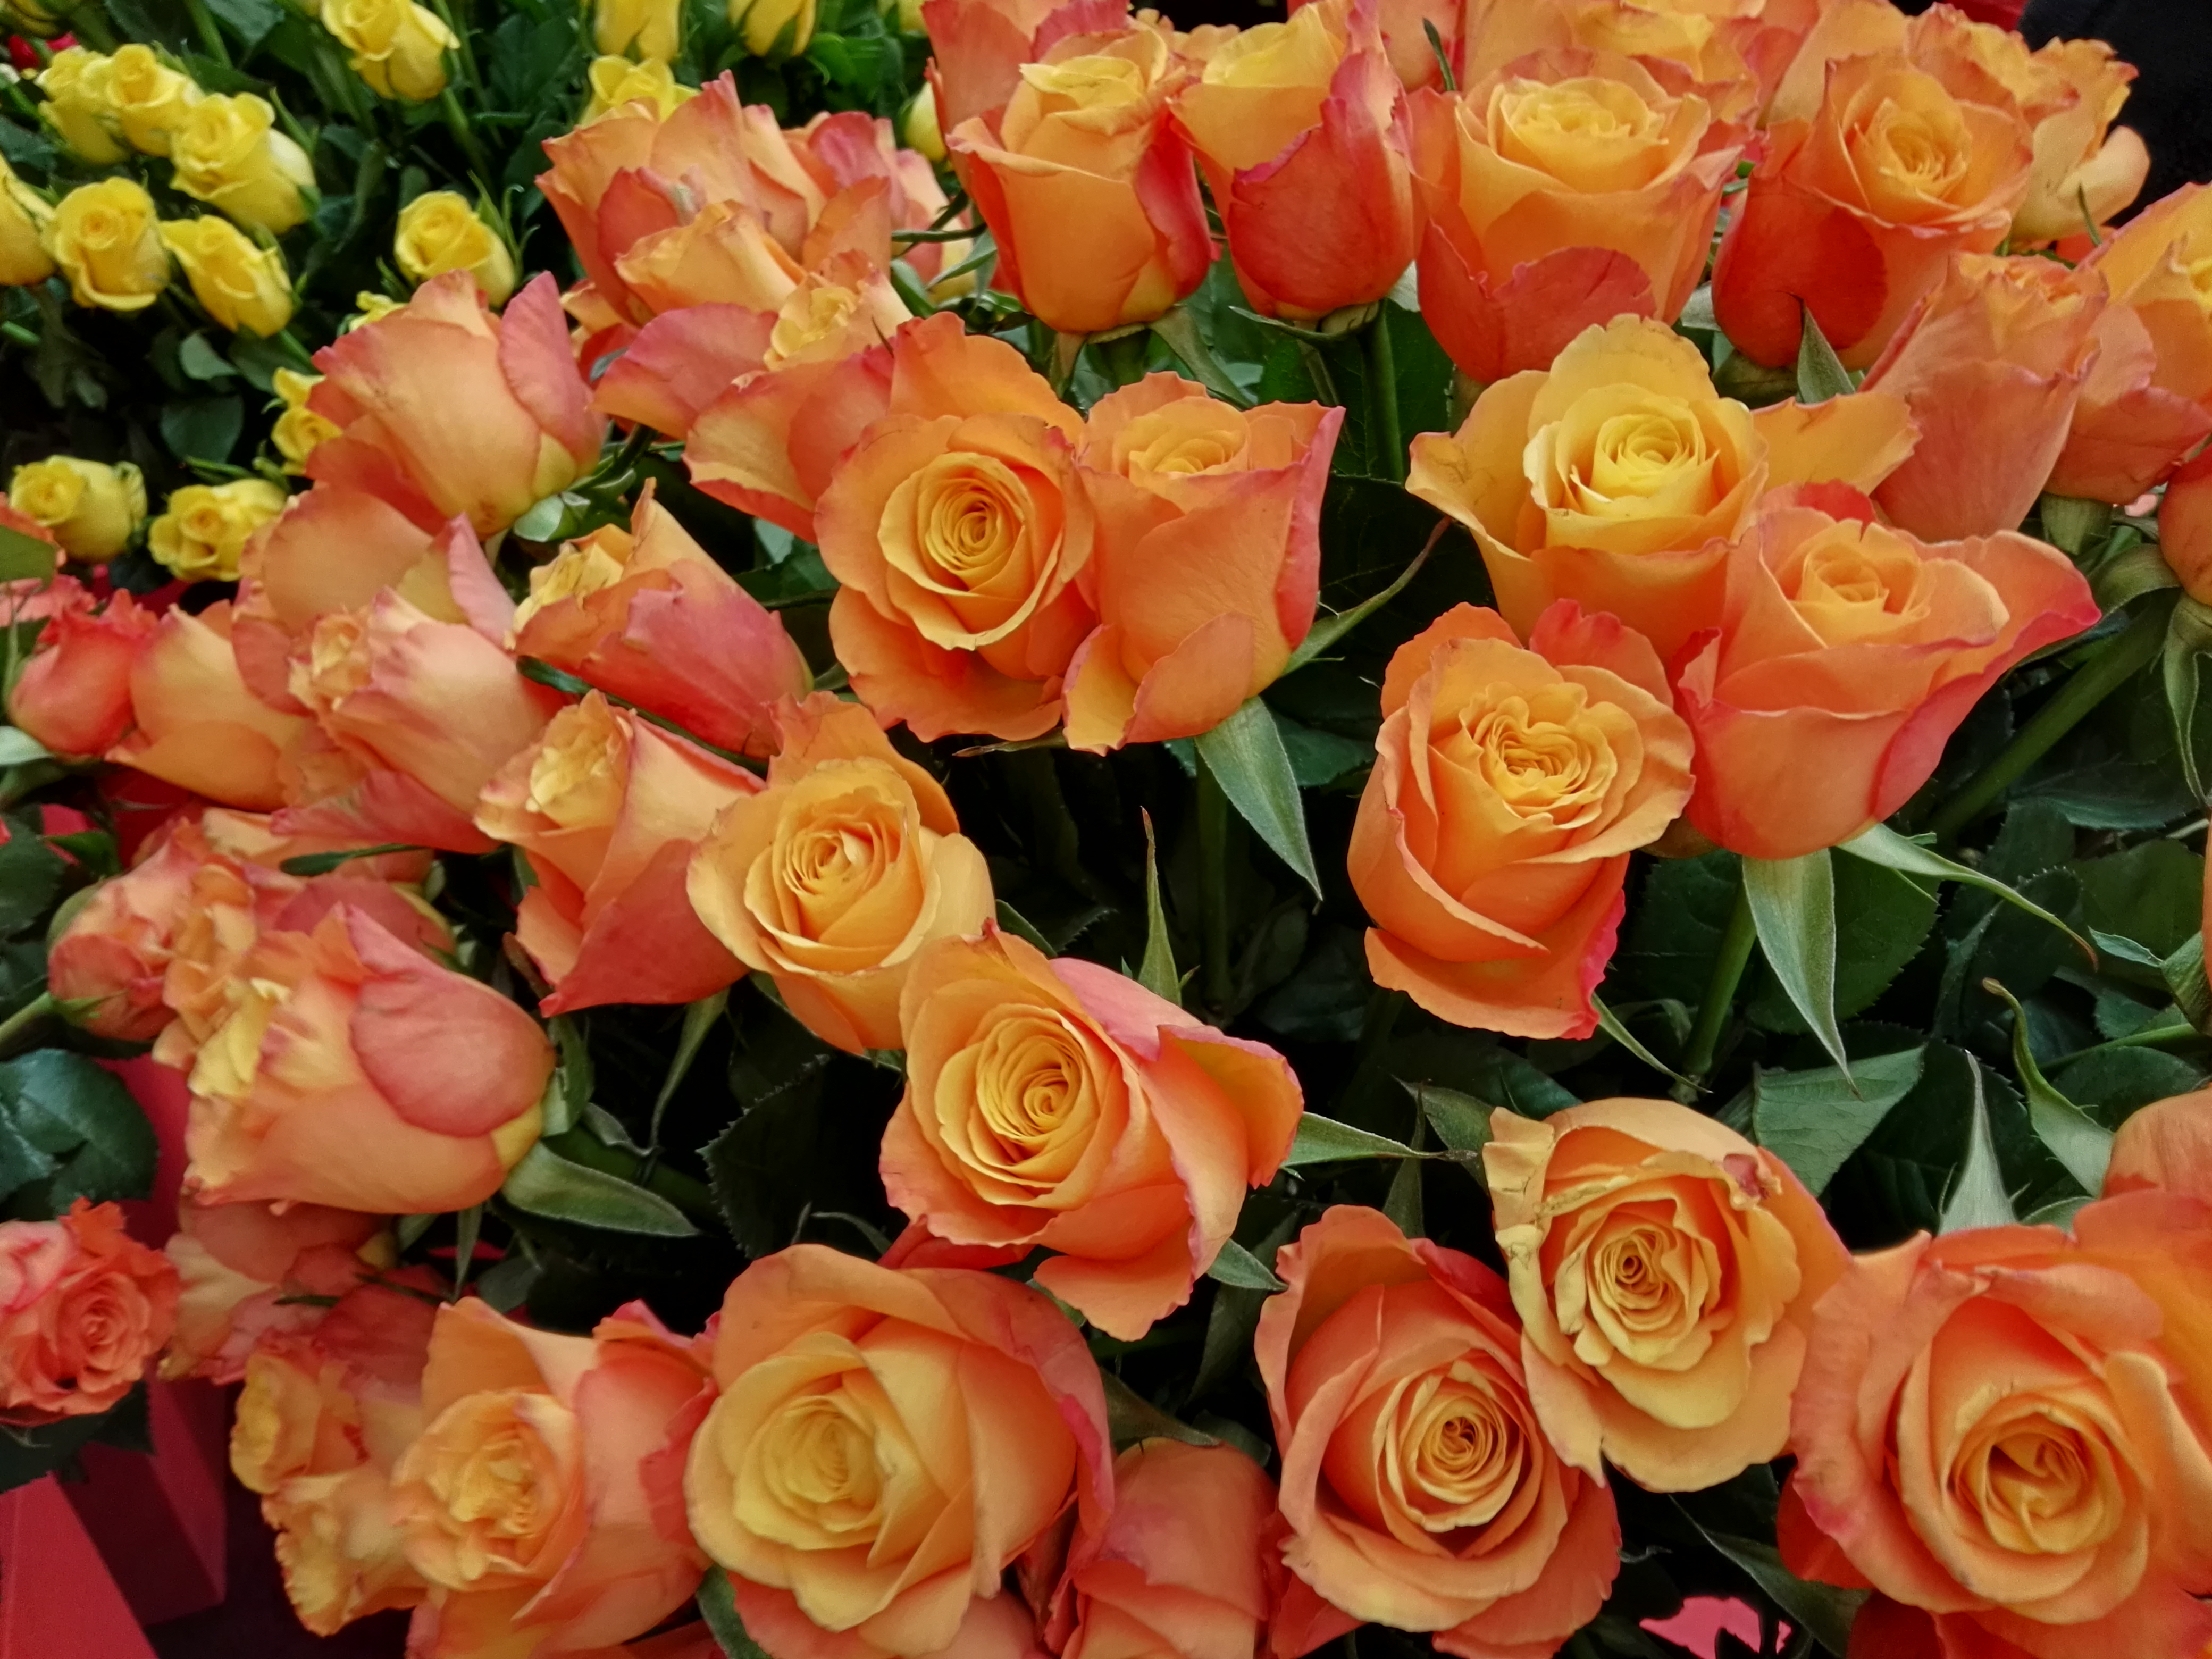 kenyas rose imports to holland When most americans think of holland, it is wooden shoes, windmills and tulips that come to mind tulips are still a huge part of the flower economy in holland however, the holland flower market is extremely diverse it is the most well-known flower center in the world floral distributors import.